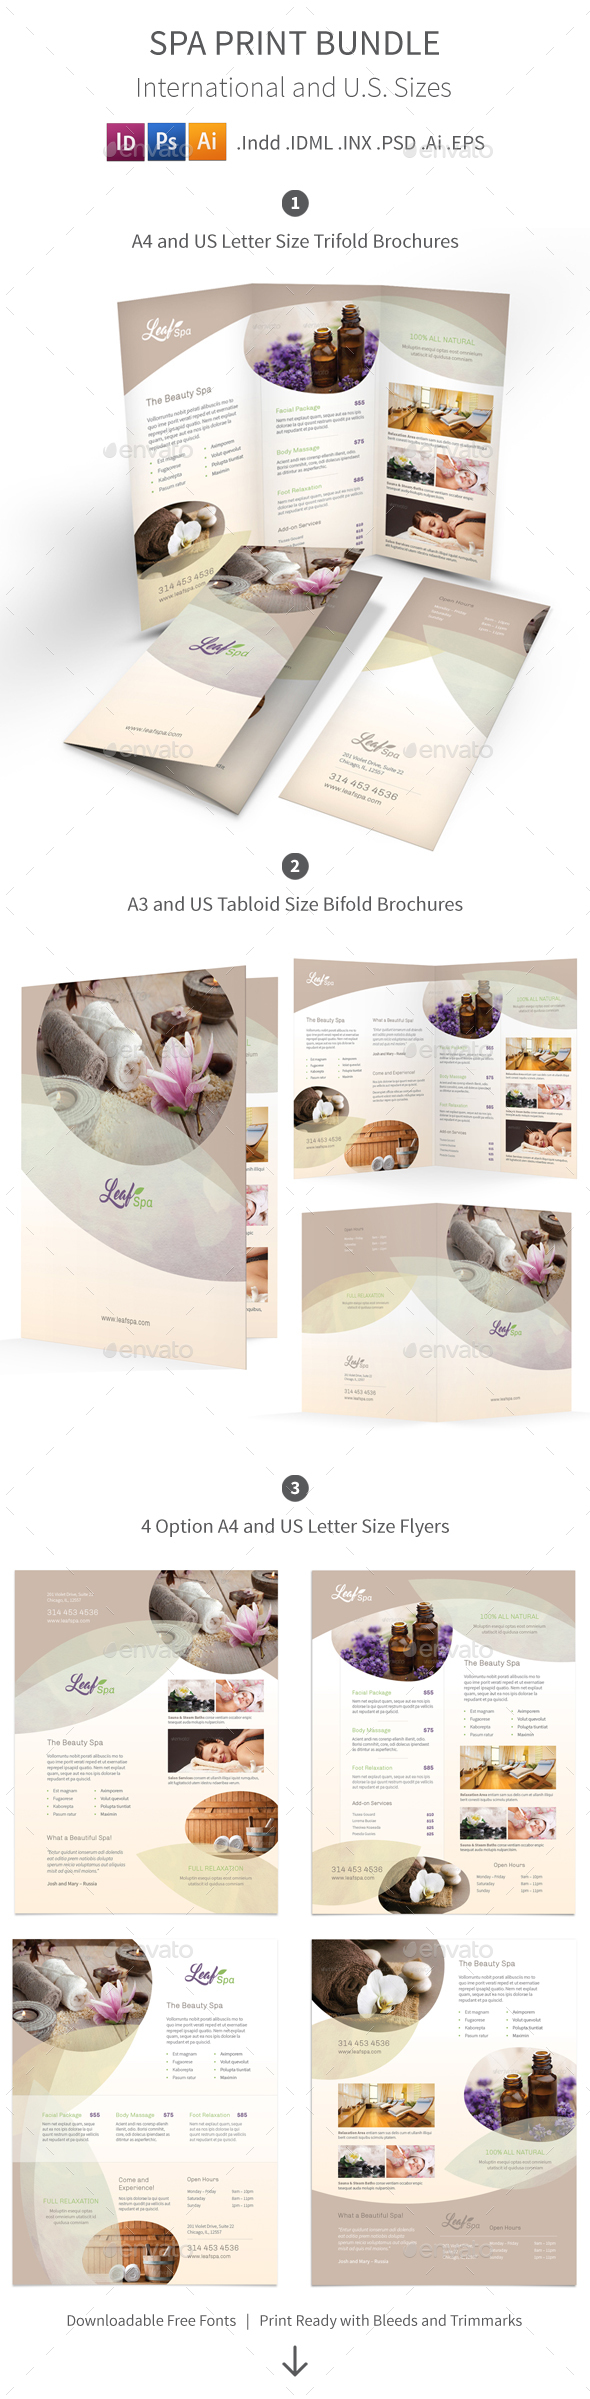 Spa Print Bundle 5 - Informational Brochures